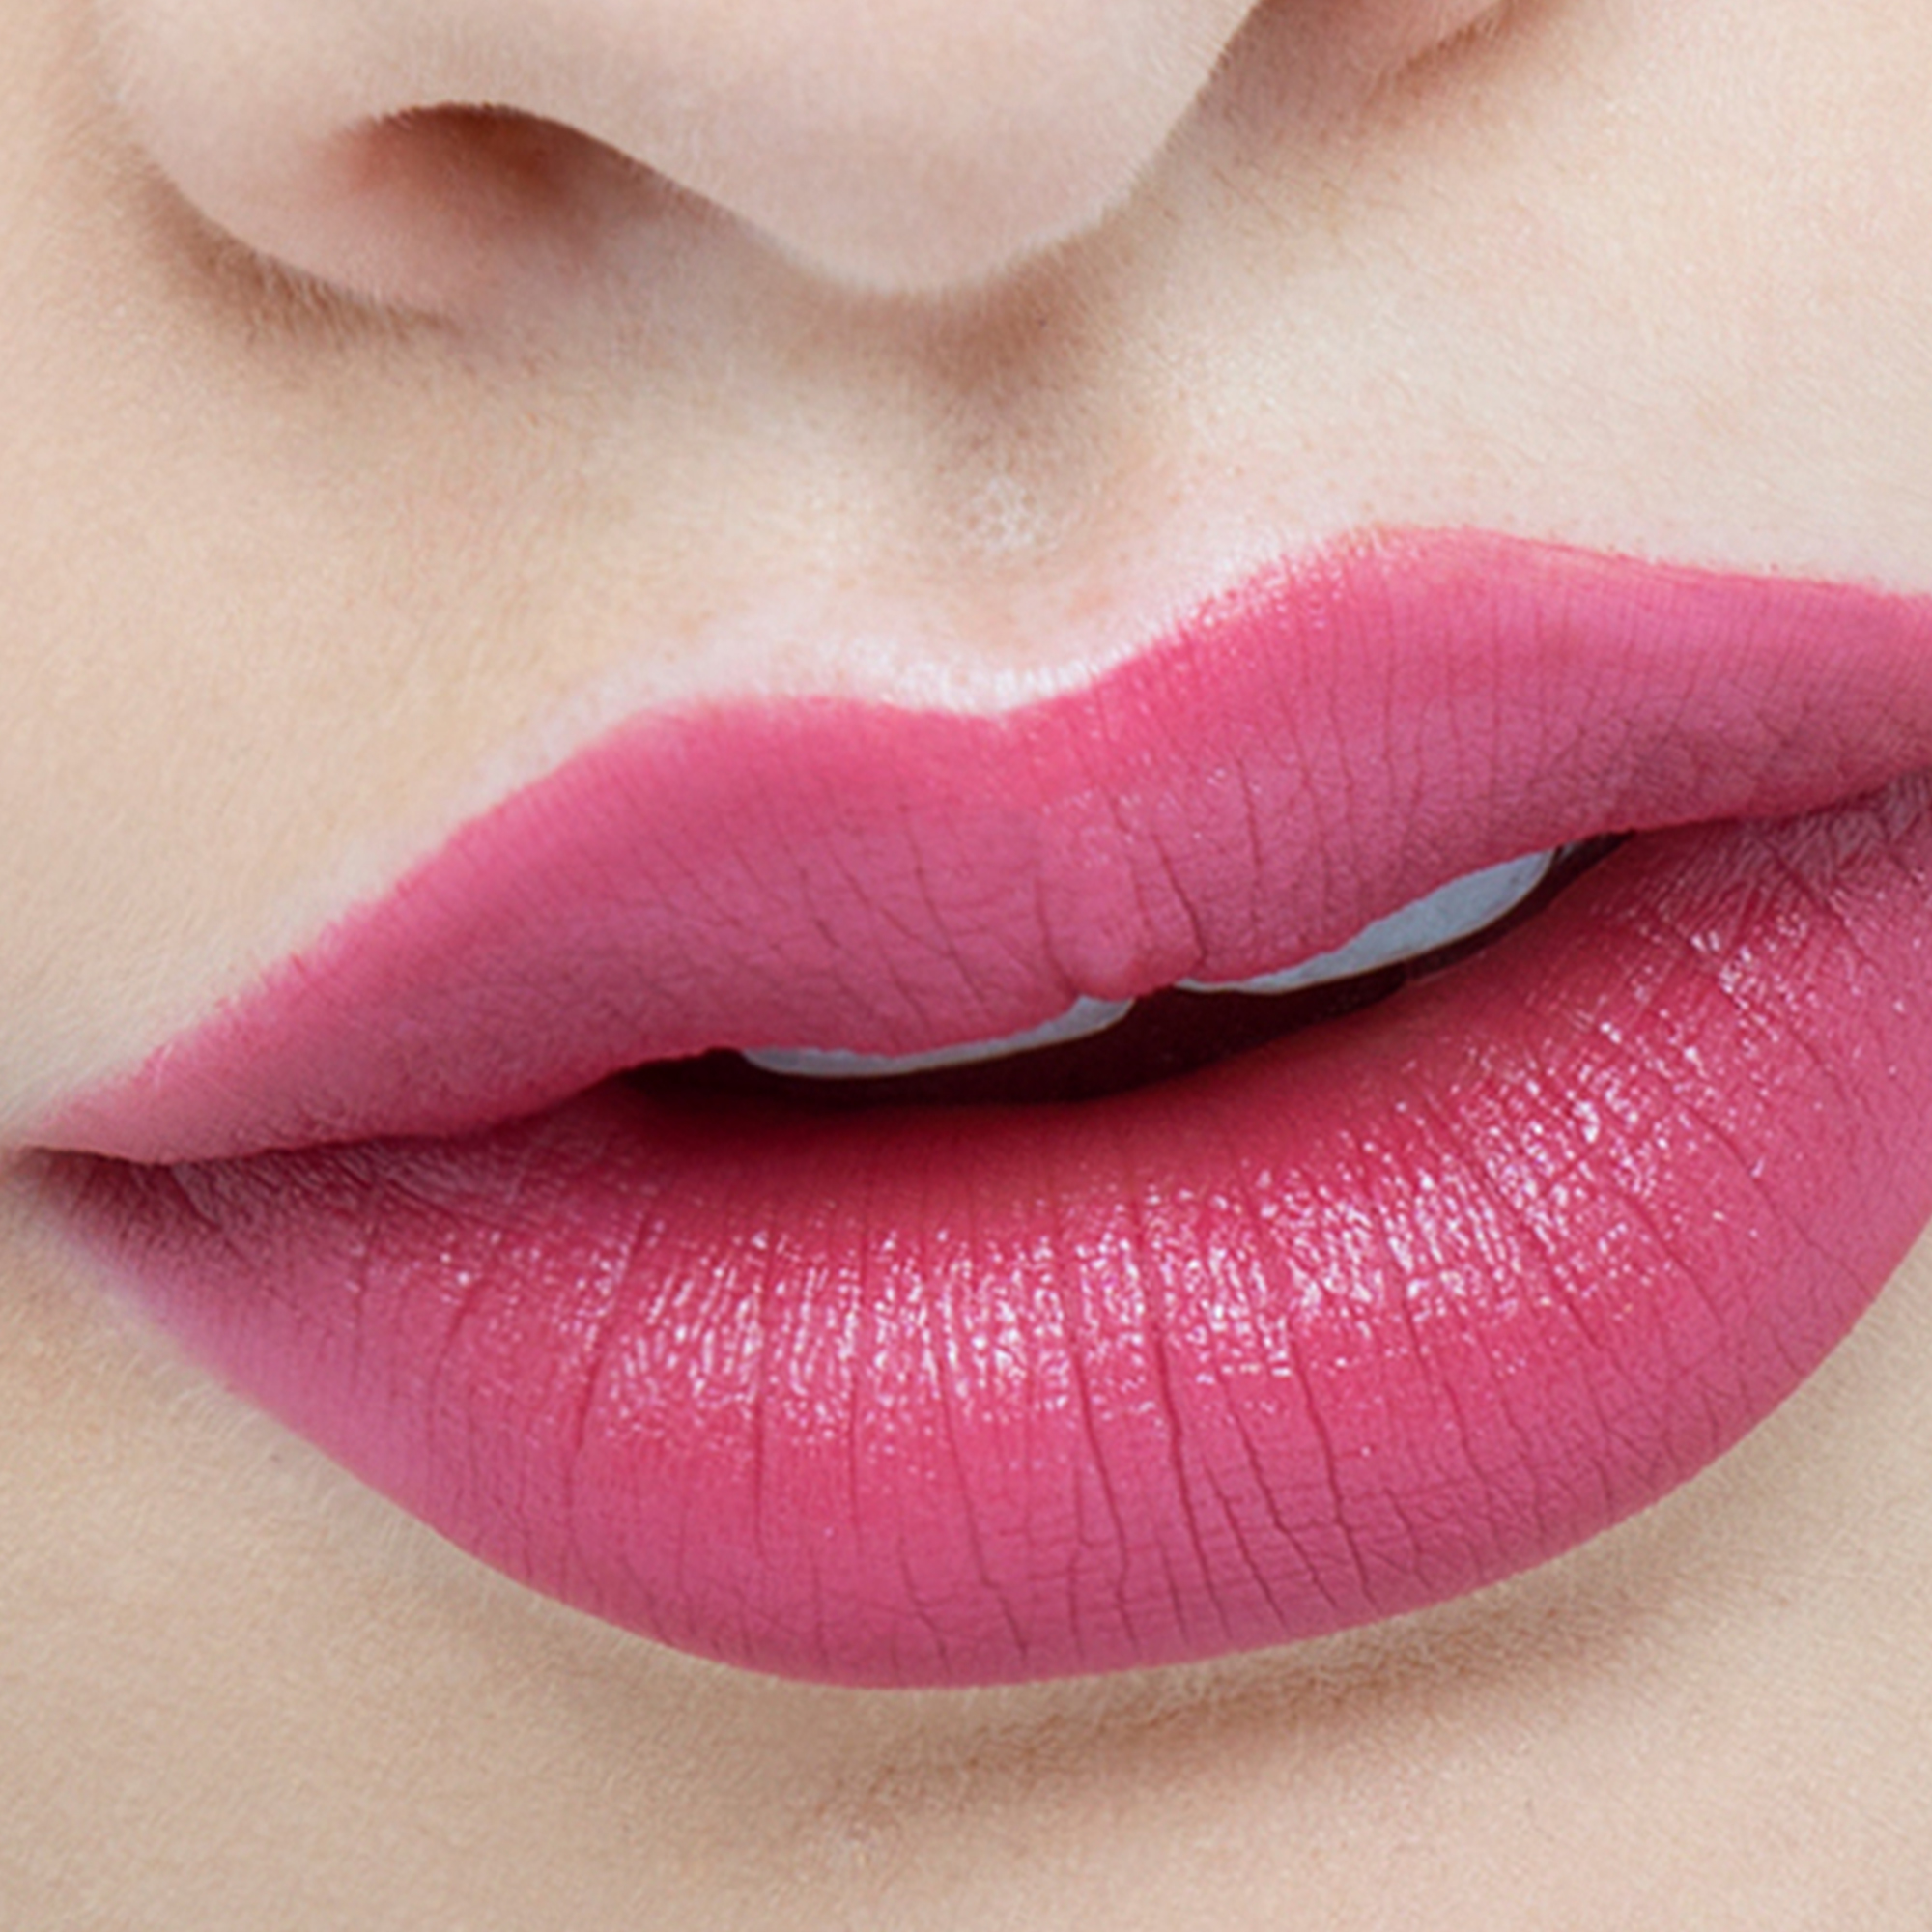 Image for Futurelipstick™ - Matte from BeautyPie US